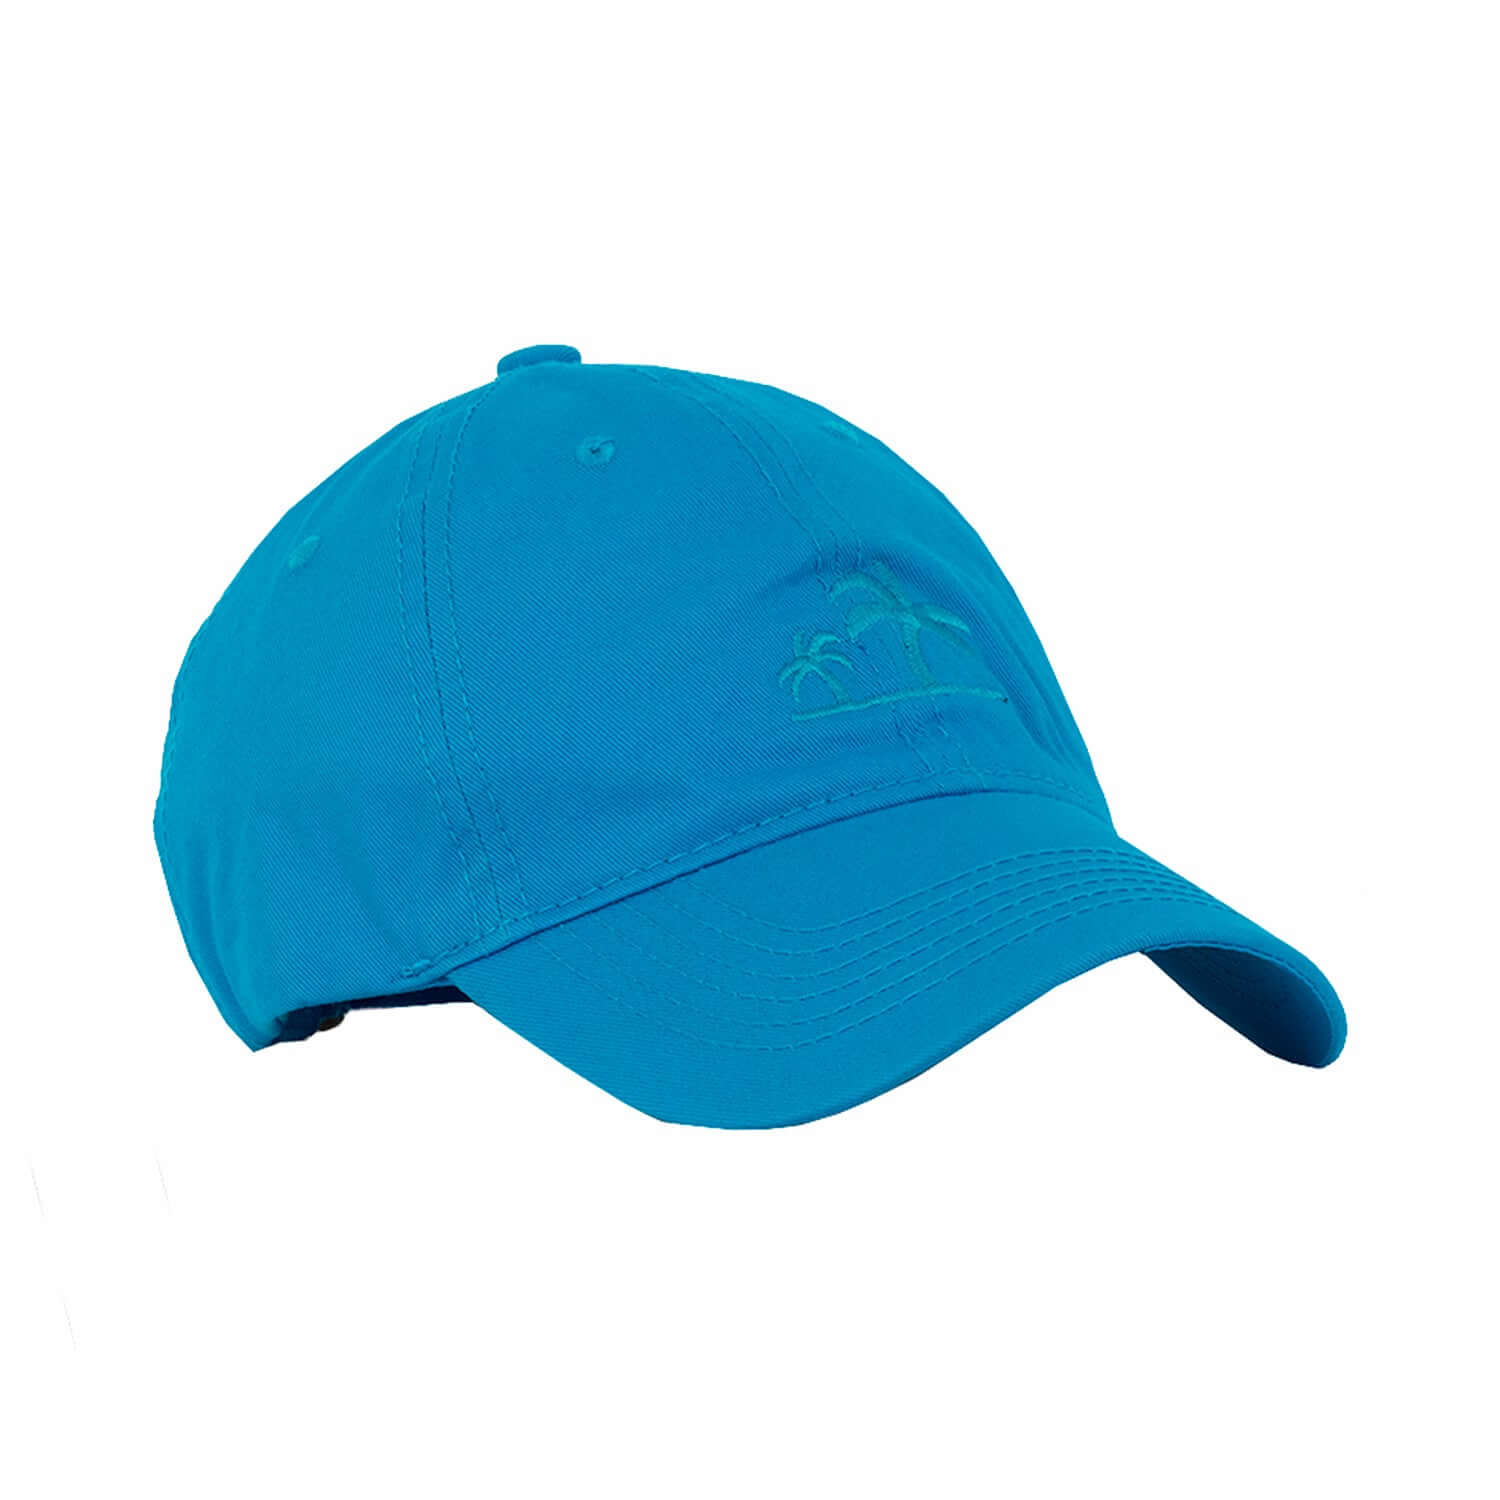 TURQUOISE HAT - Clorofila Sea Wear